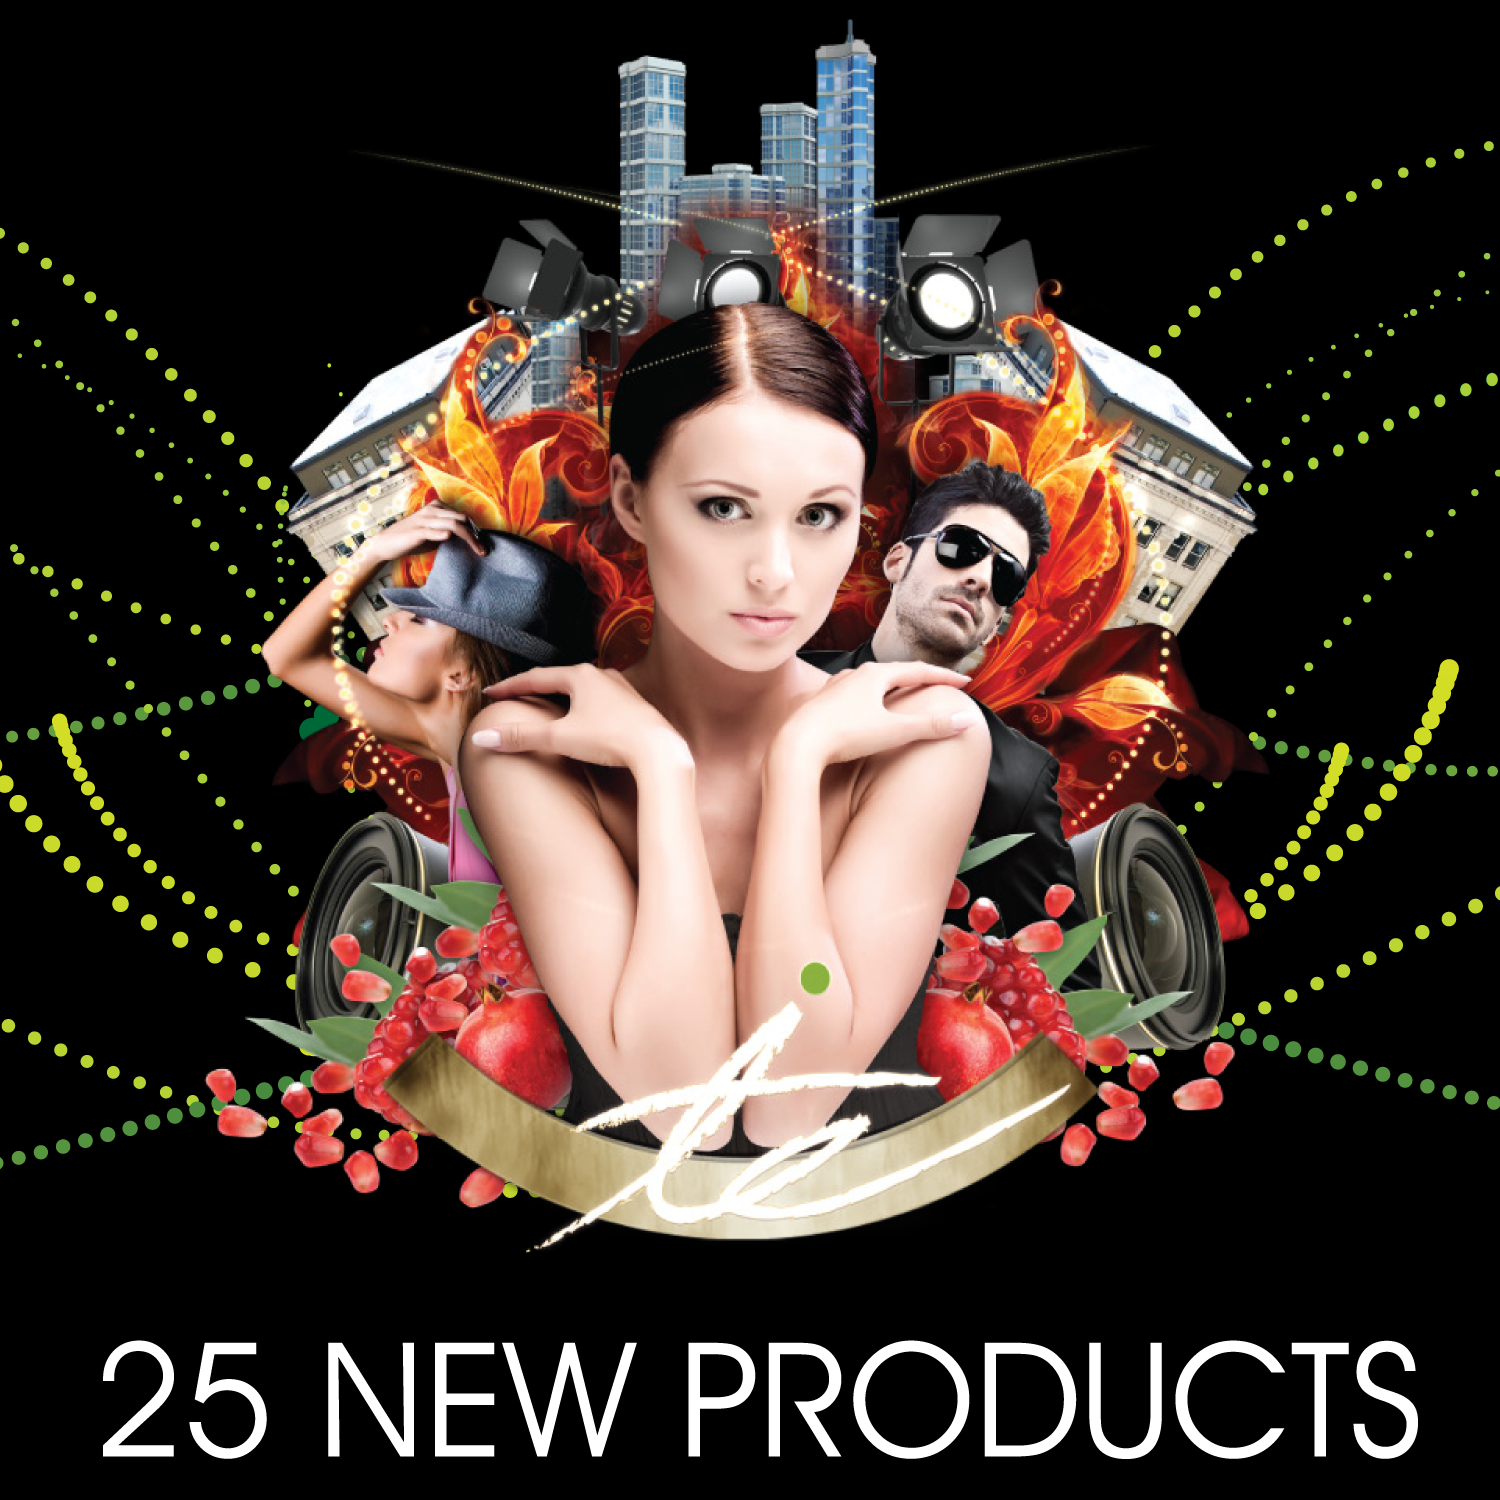 New Products 25 New Products! 25 New ITE Products